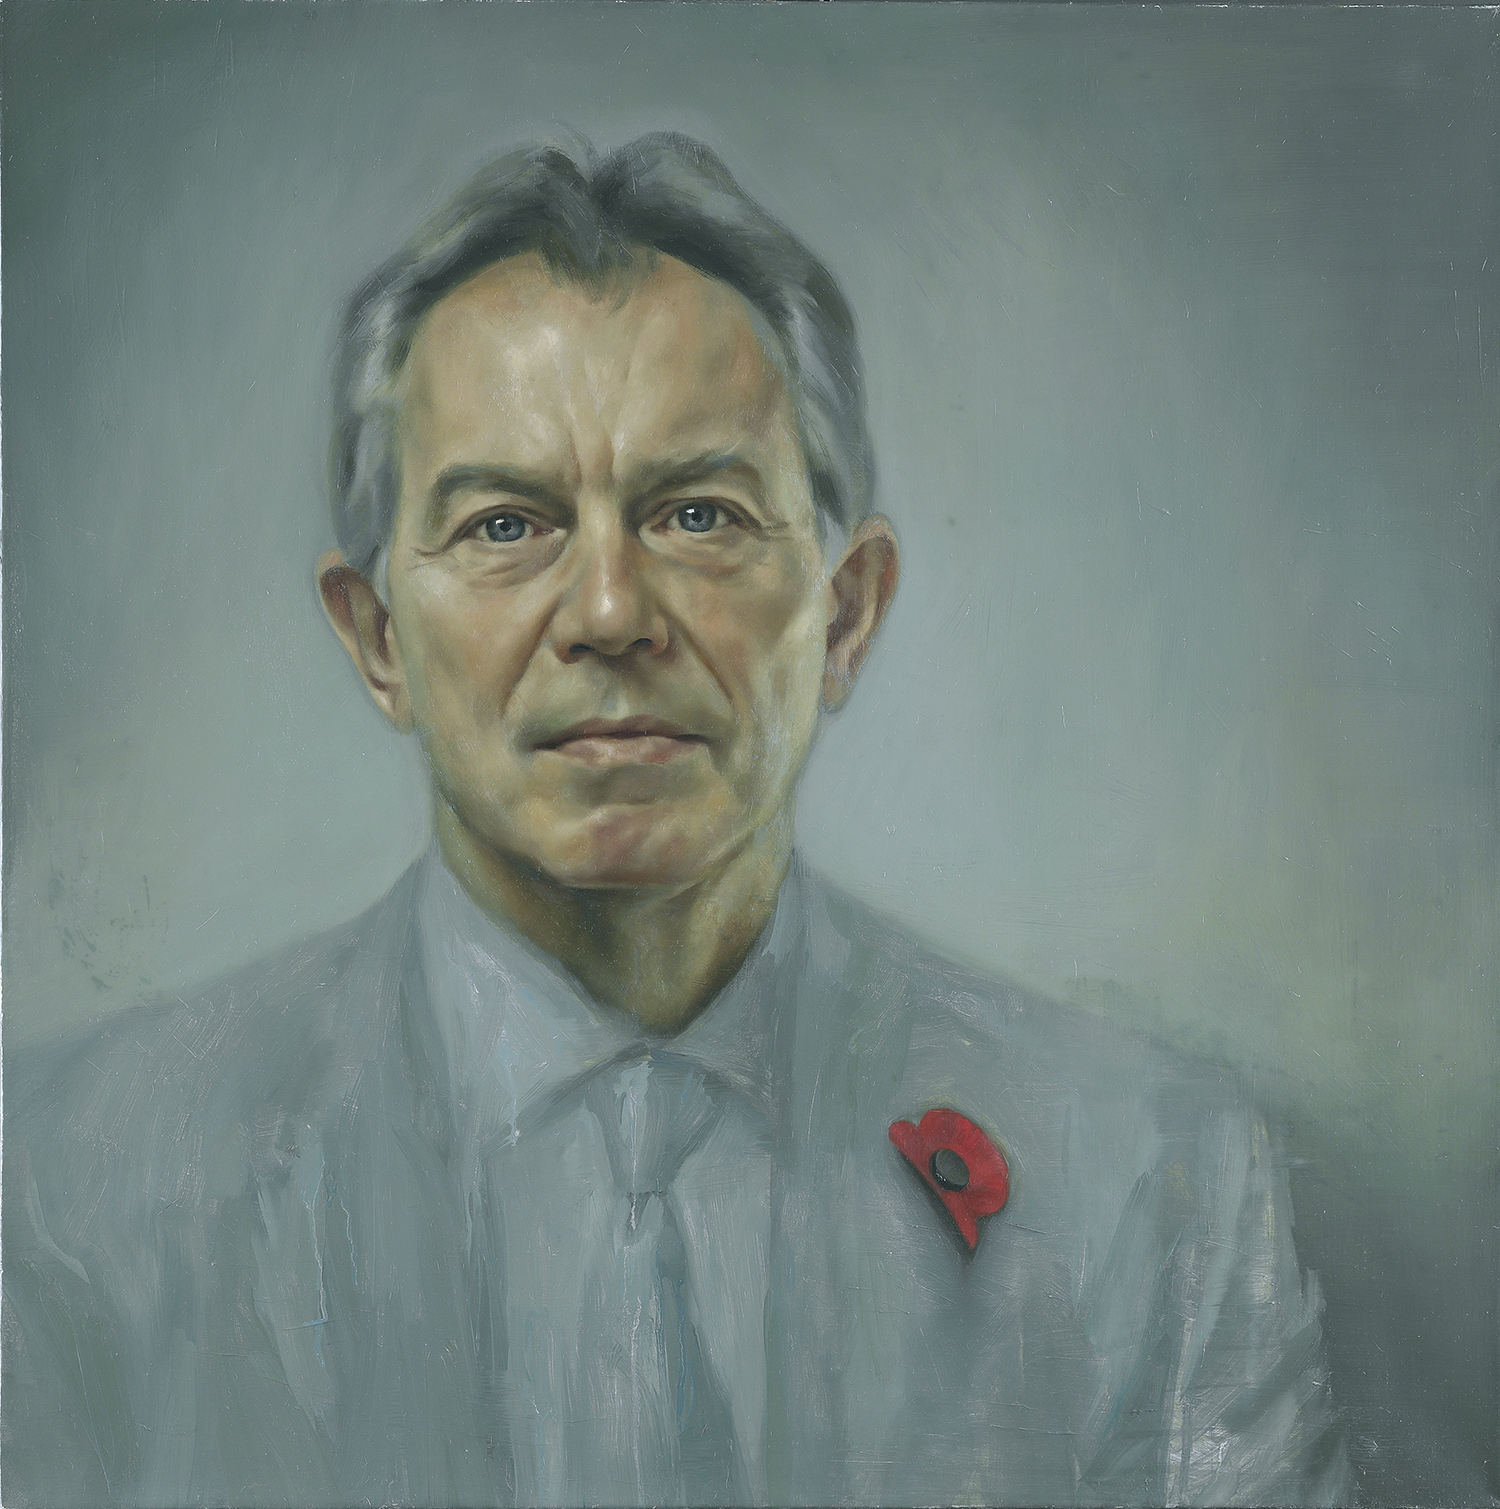 Tony Blair with Poppy.jpg